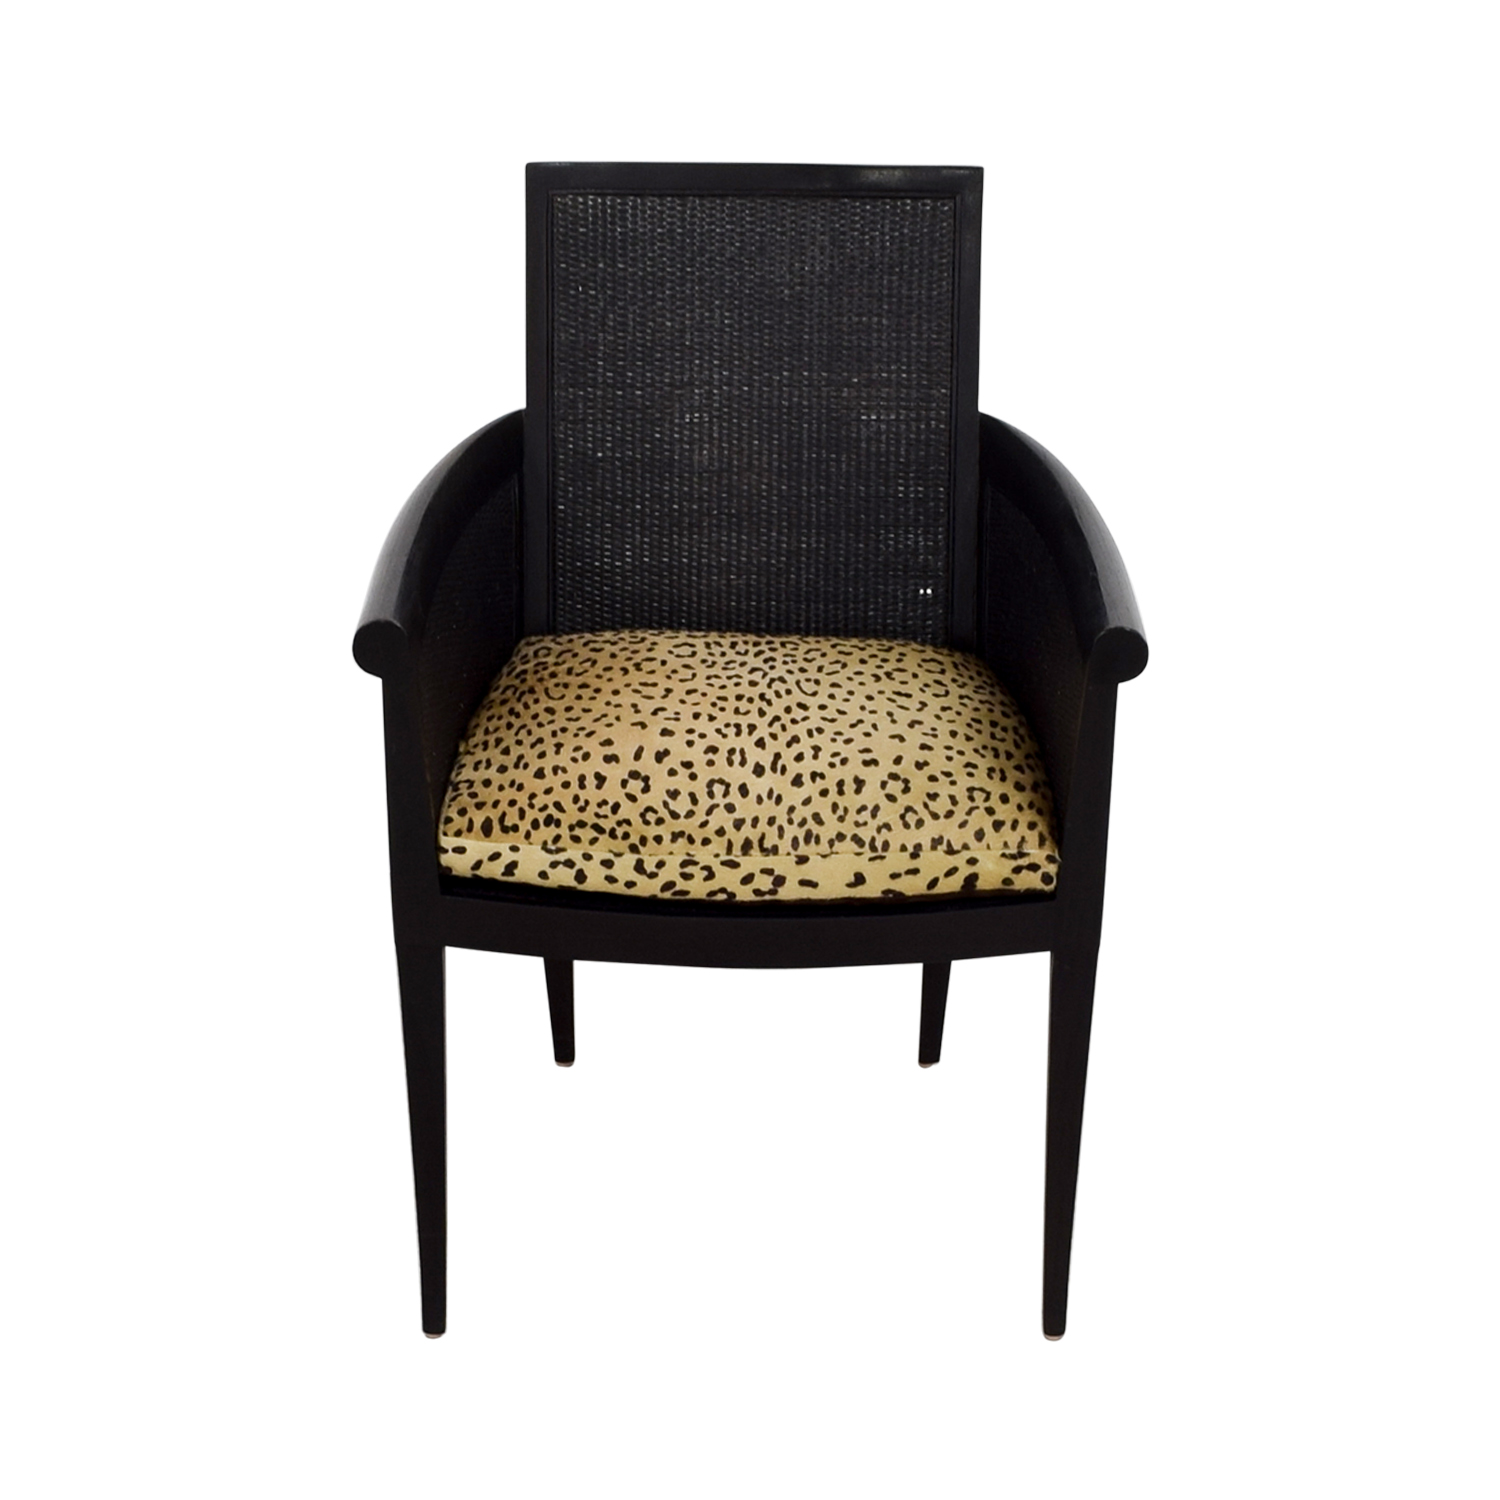 buy Sutherland Cane Armchair with Pony Skin Leopard Cushion Sutherland Chairs